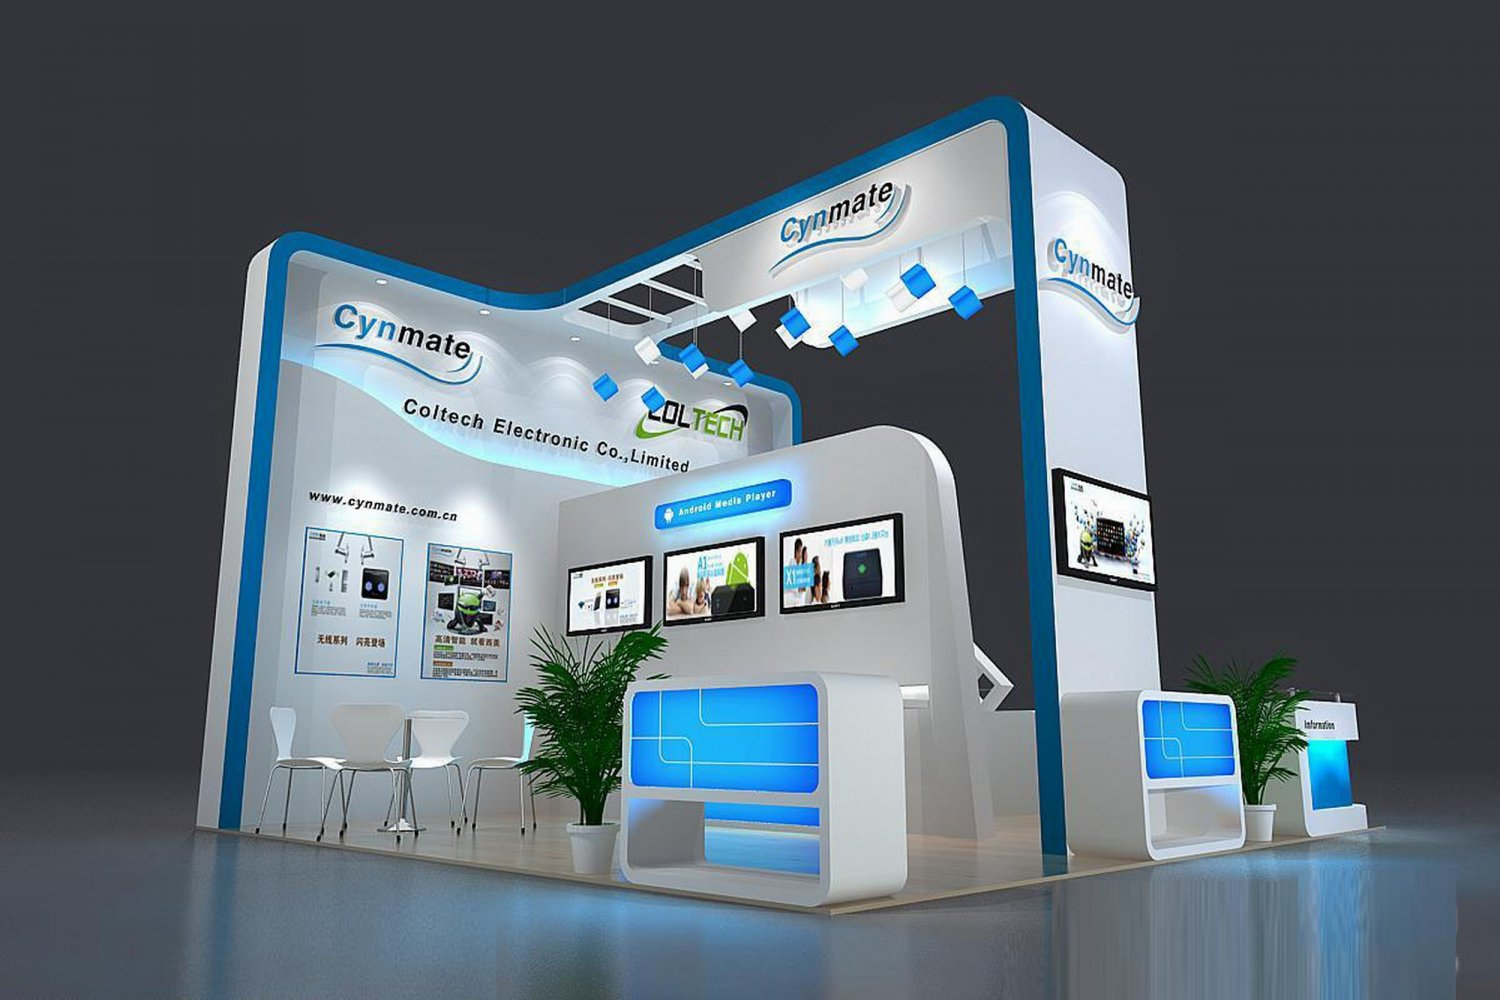 The basics of exhibition stand designs